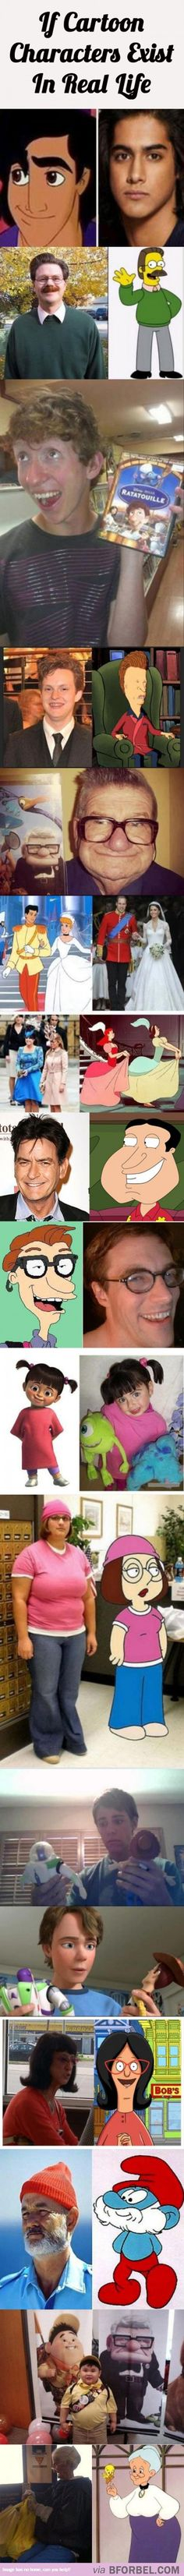 16 Cartoon Characters That Exist In Real Life…